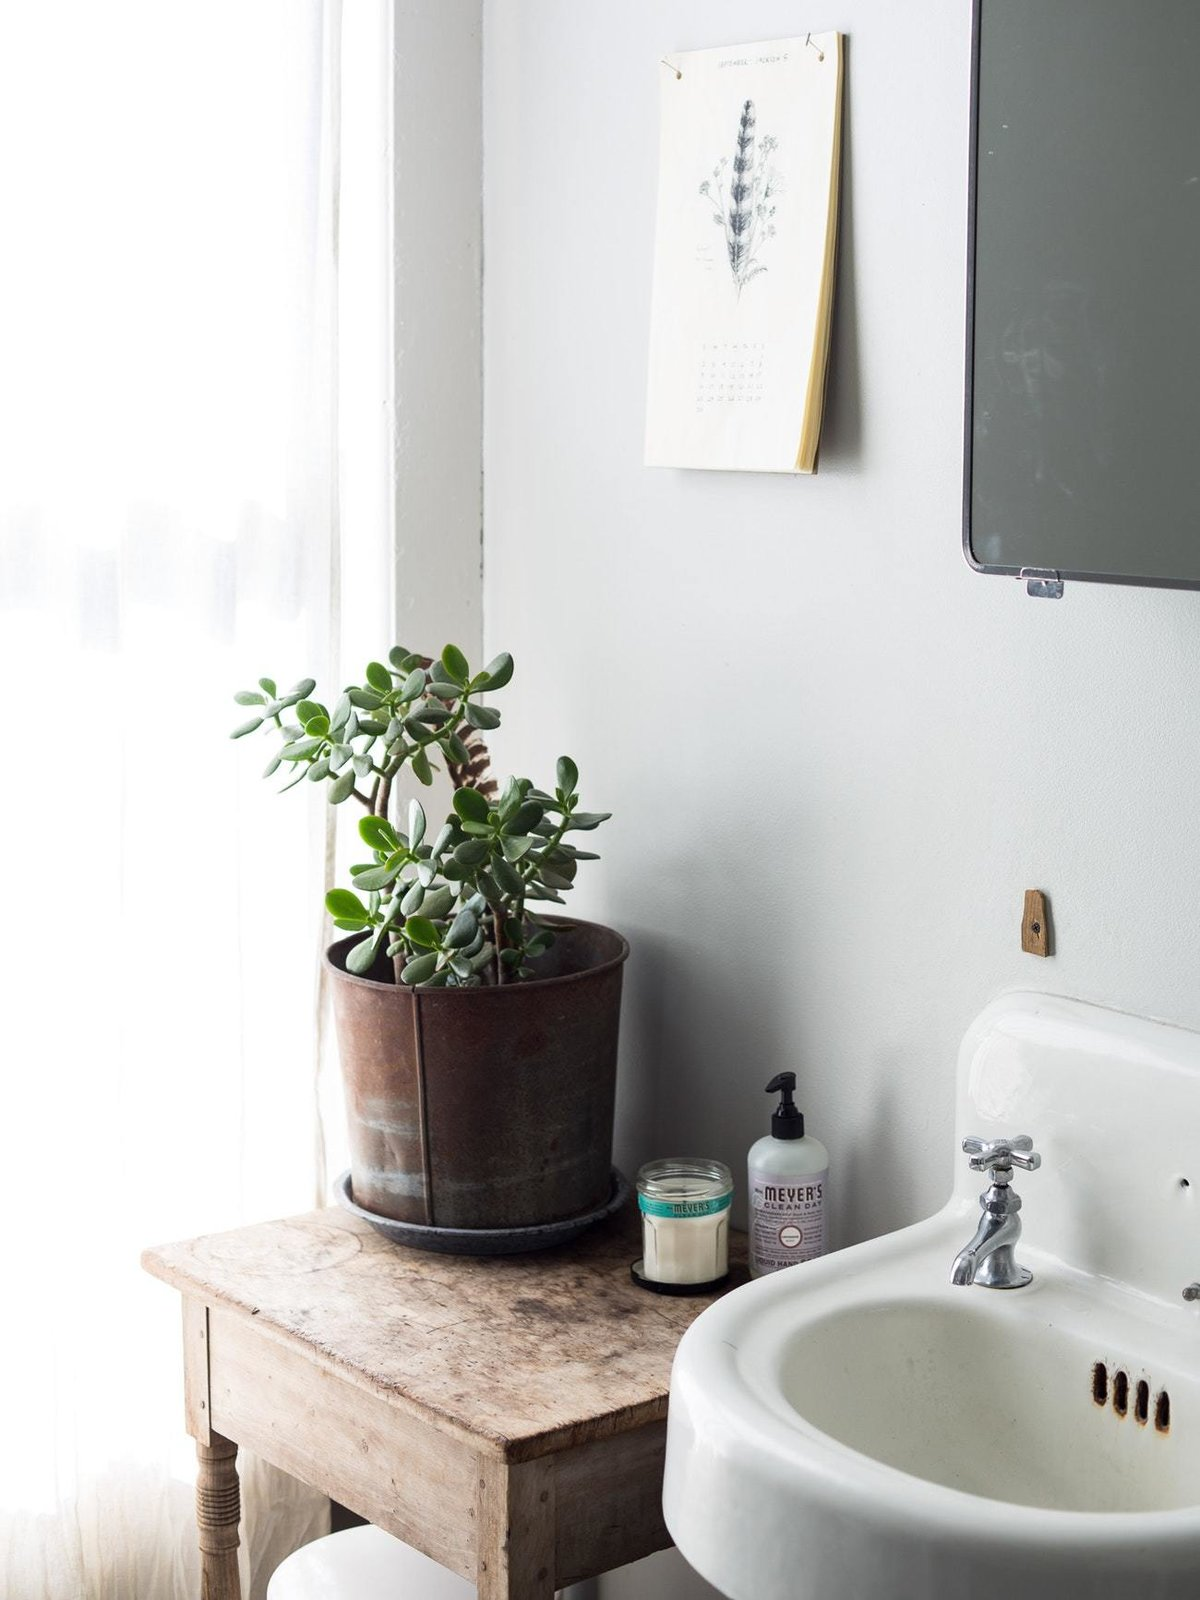 Bath Room and Wall Mount Sink  Photo 4 of 6 in 5 Houseplants You Can't Kill